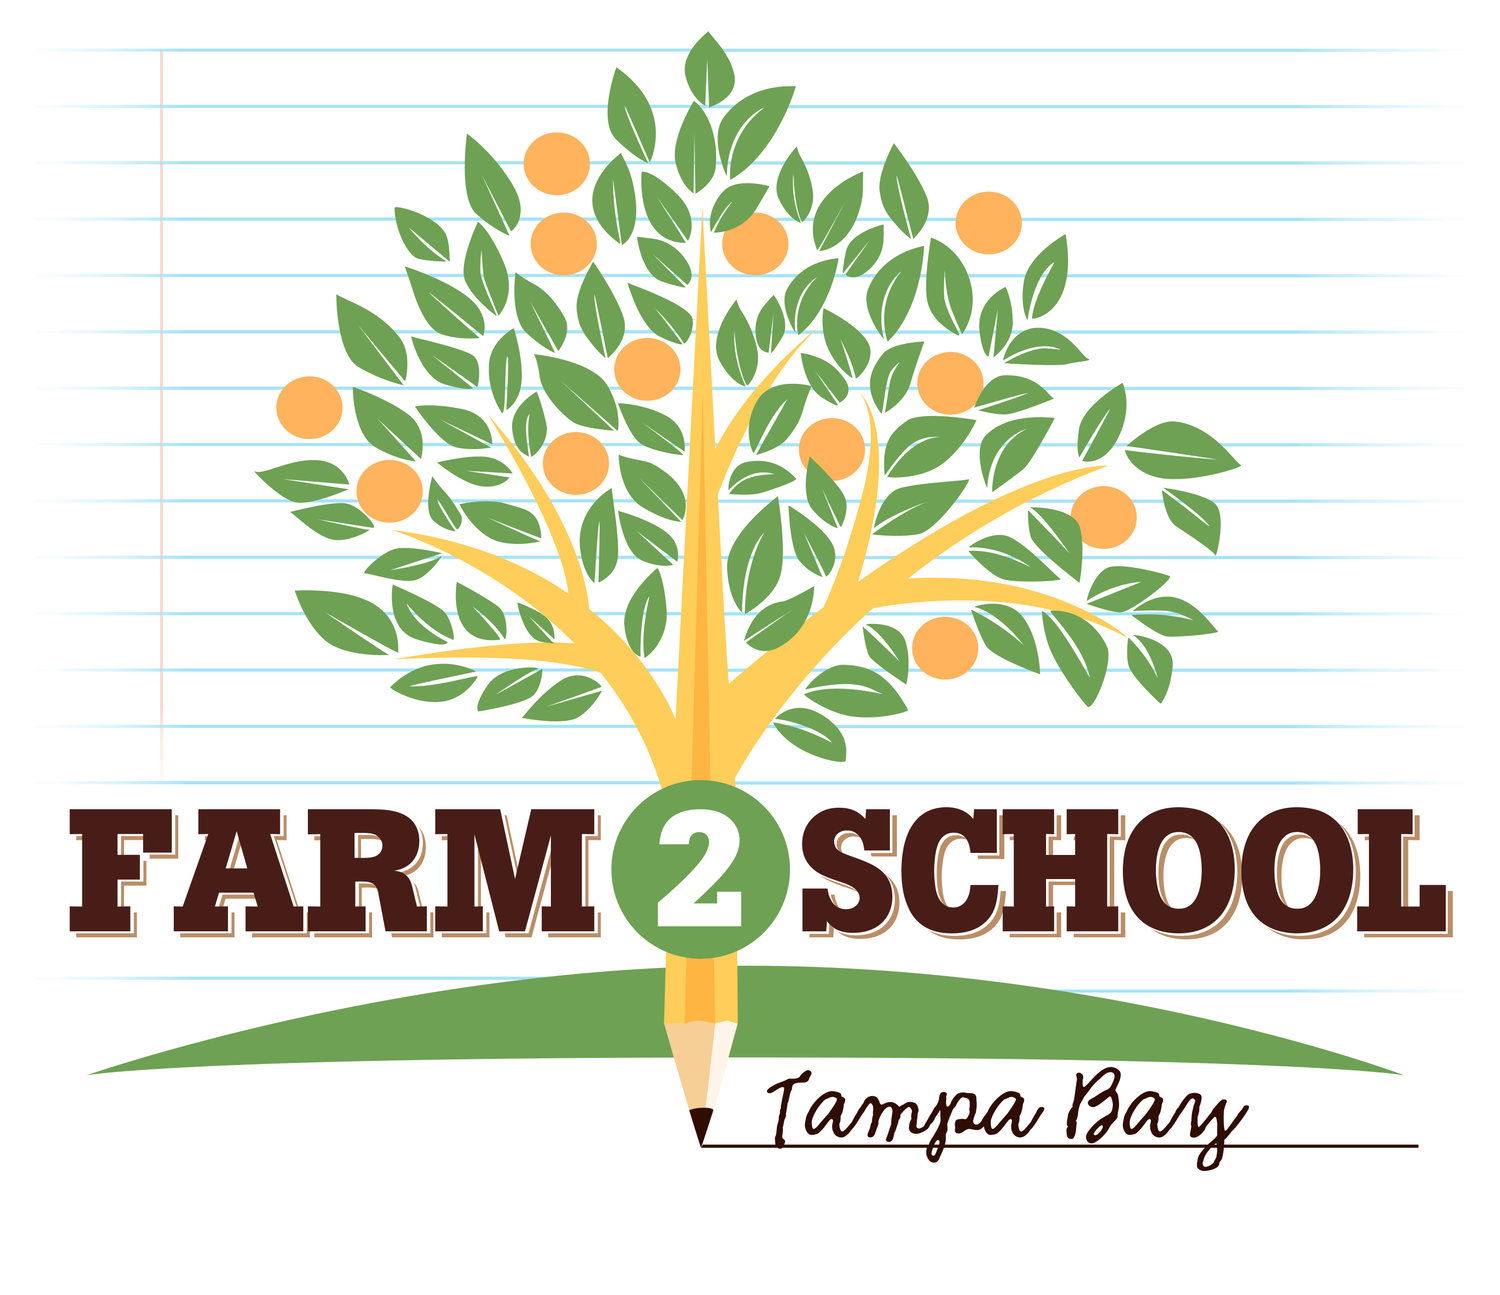 Tampa Bay Farm 2 School:            empowers youth for health and success through hands-on agricultural experiences